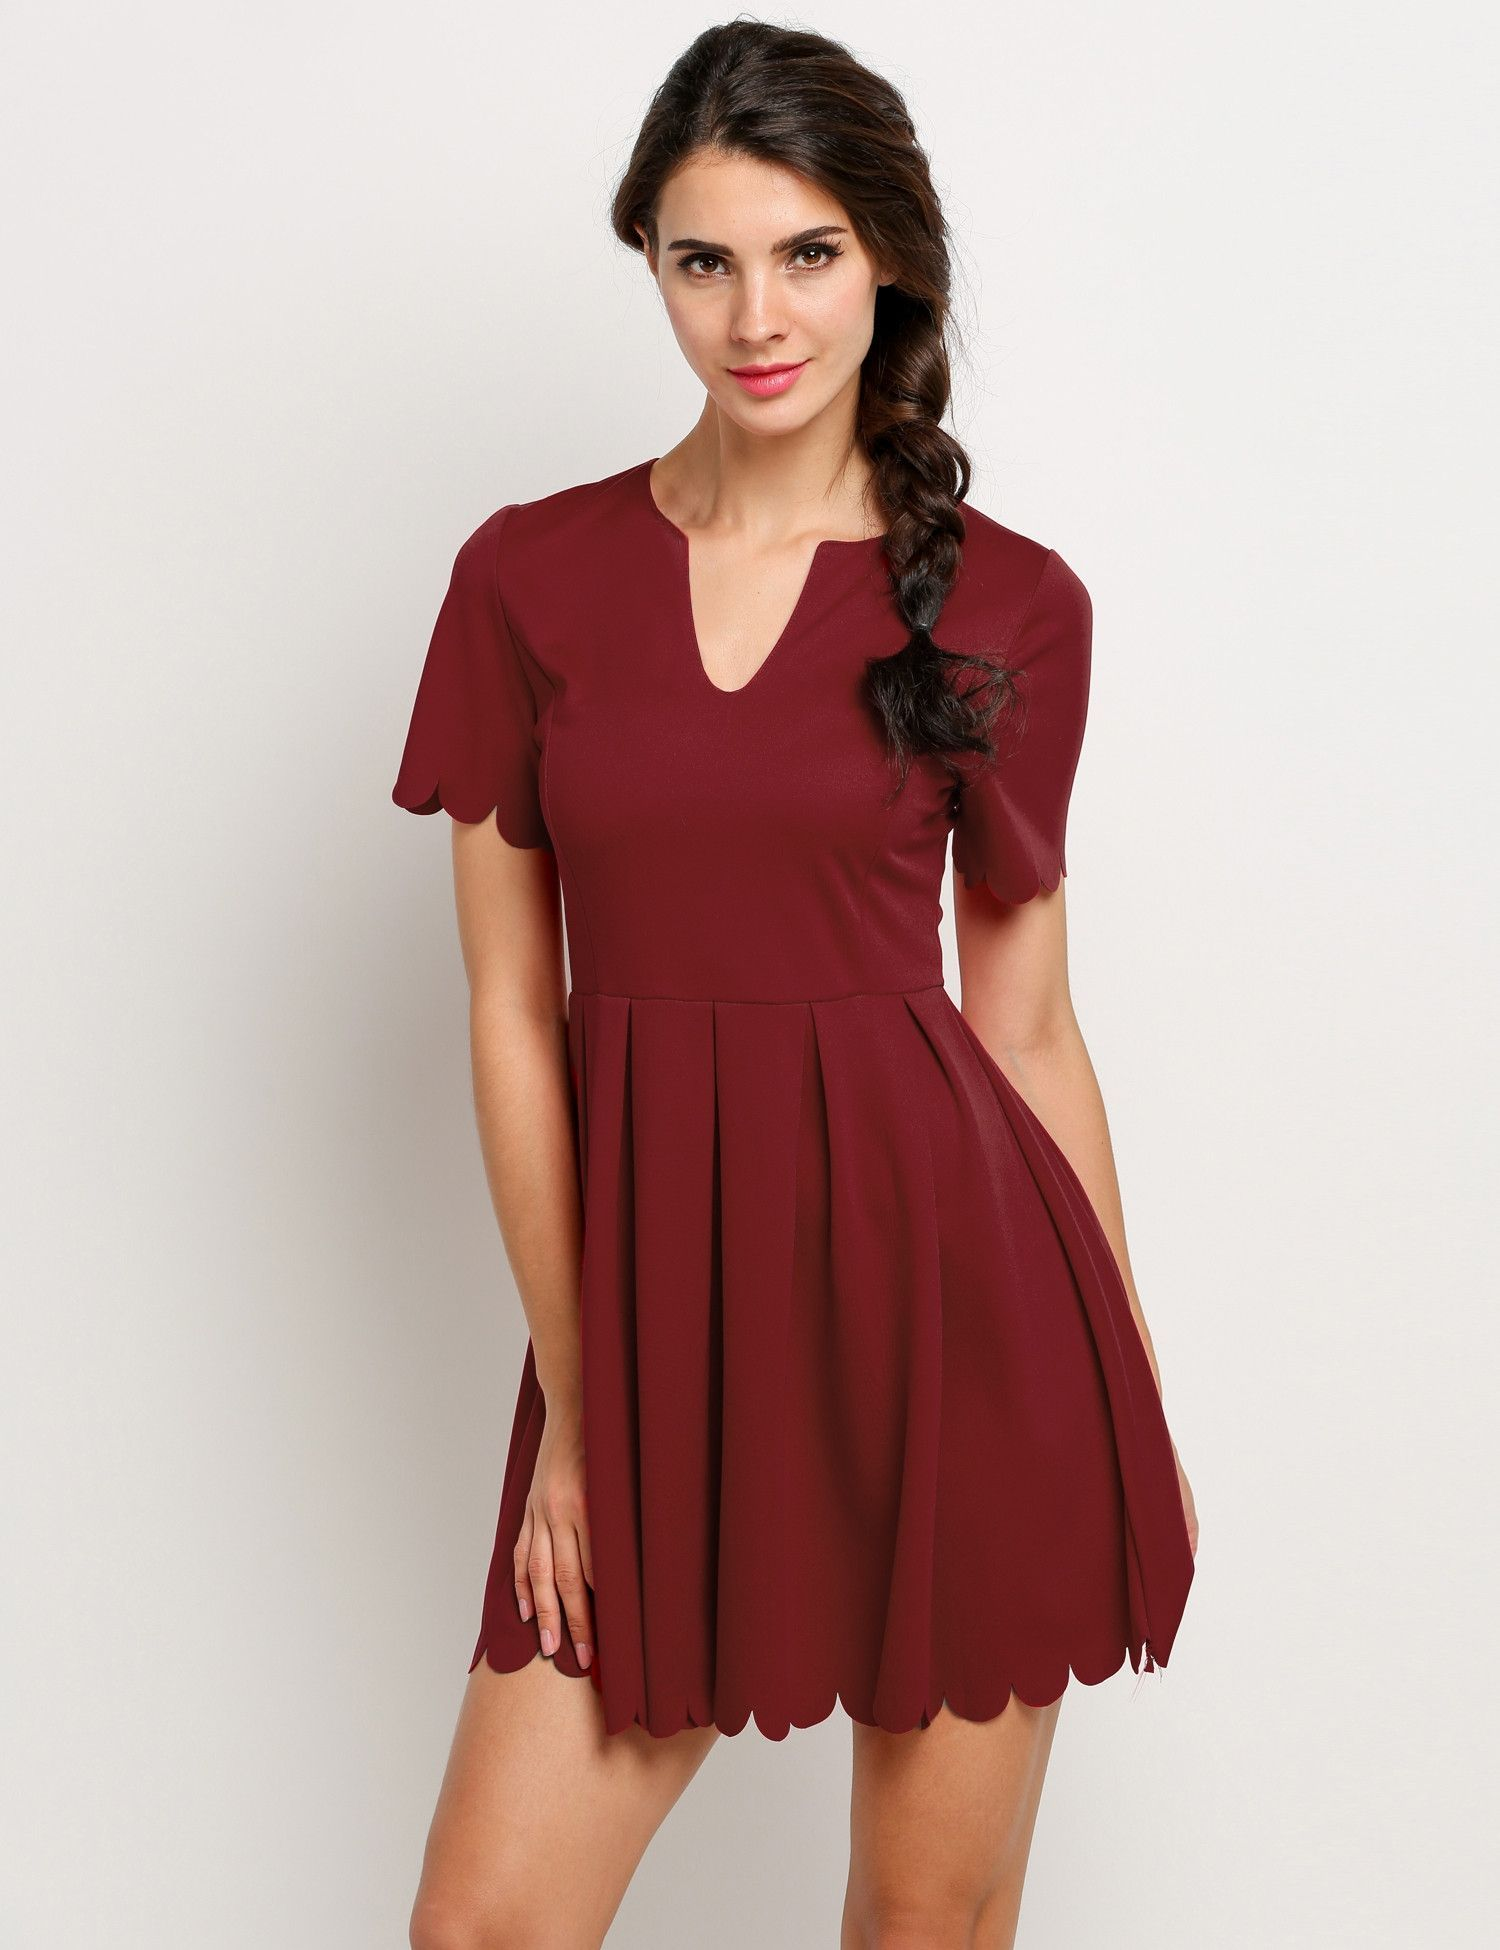 Dresses out going for women exclusive photo